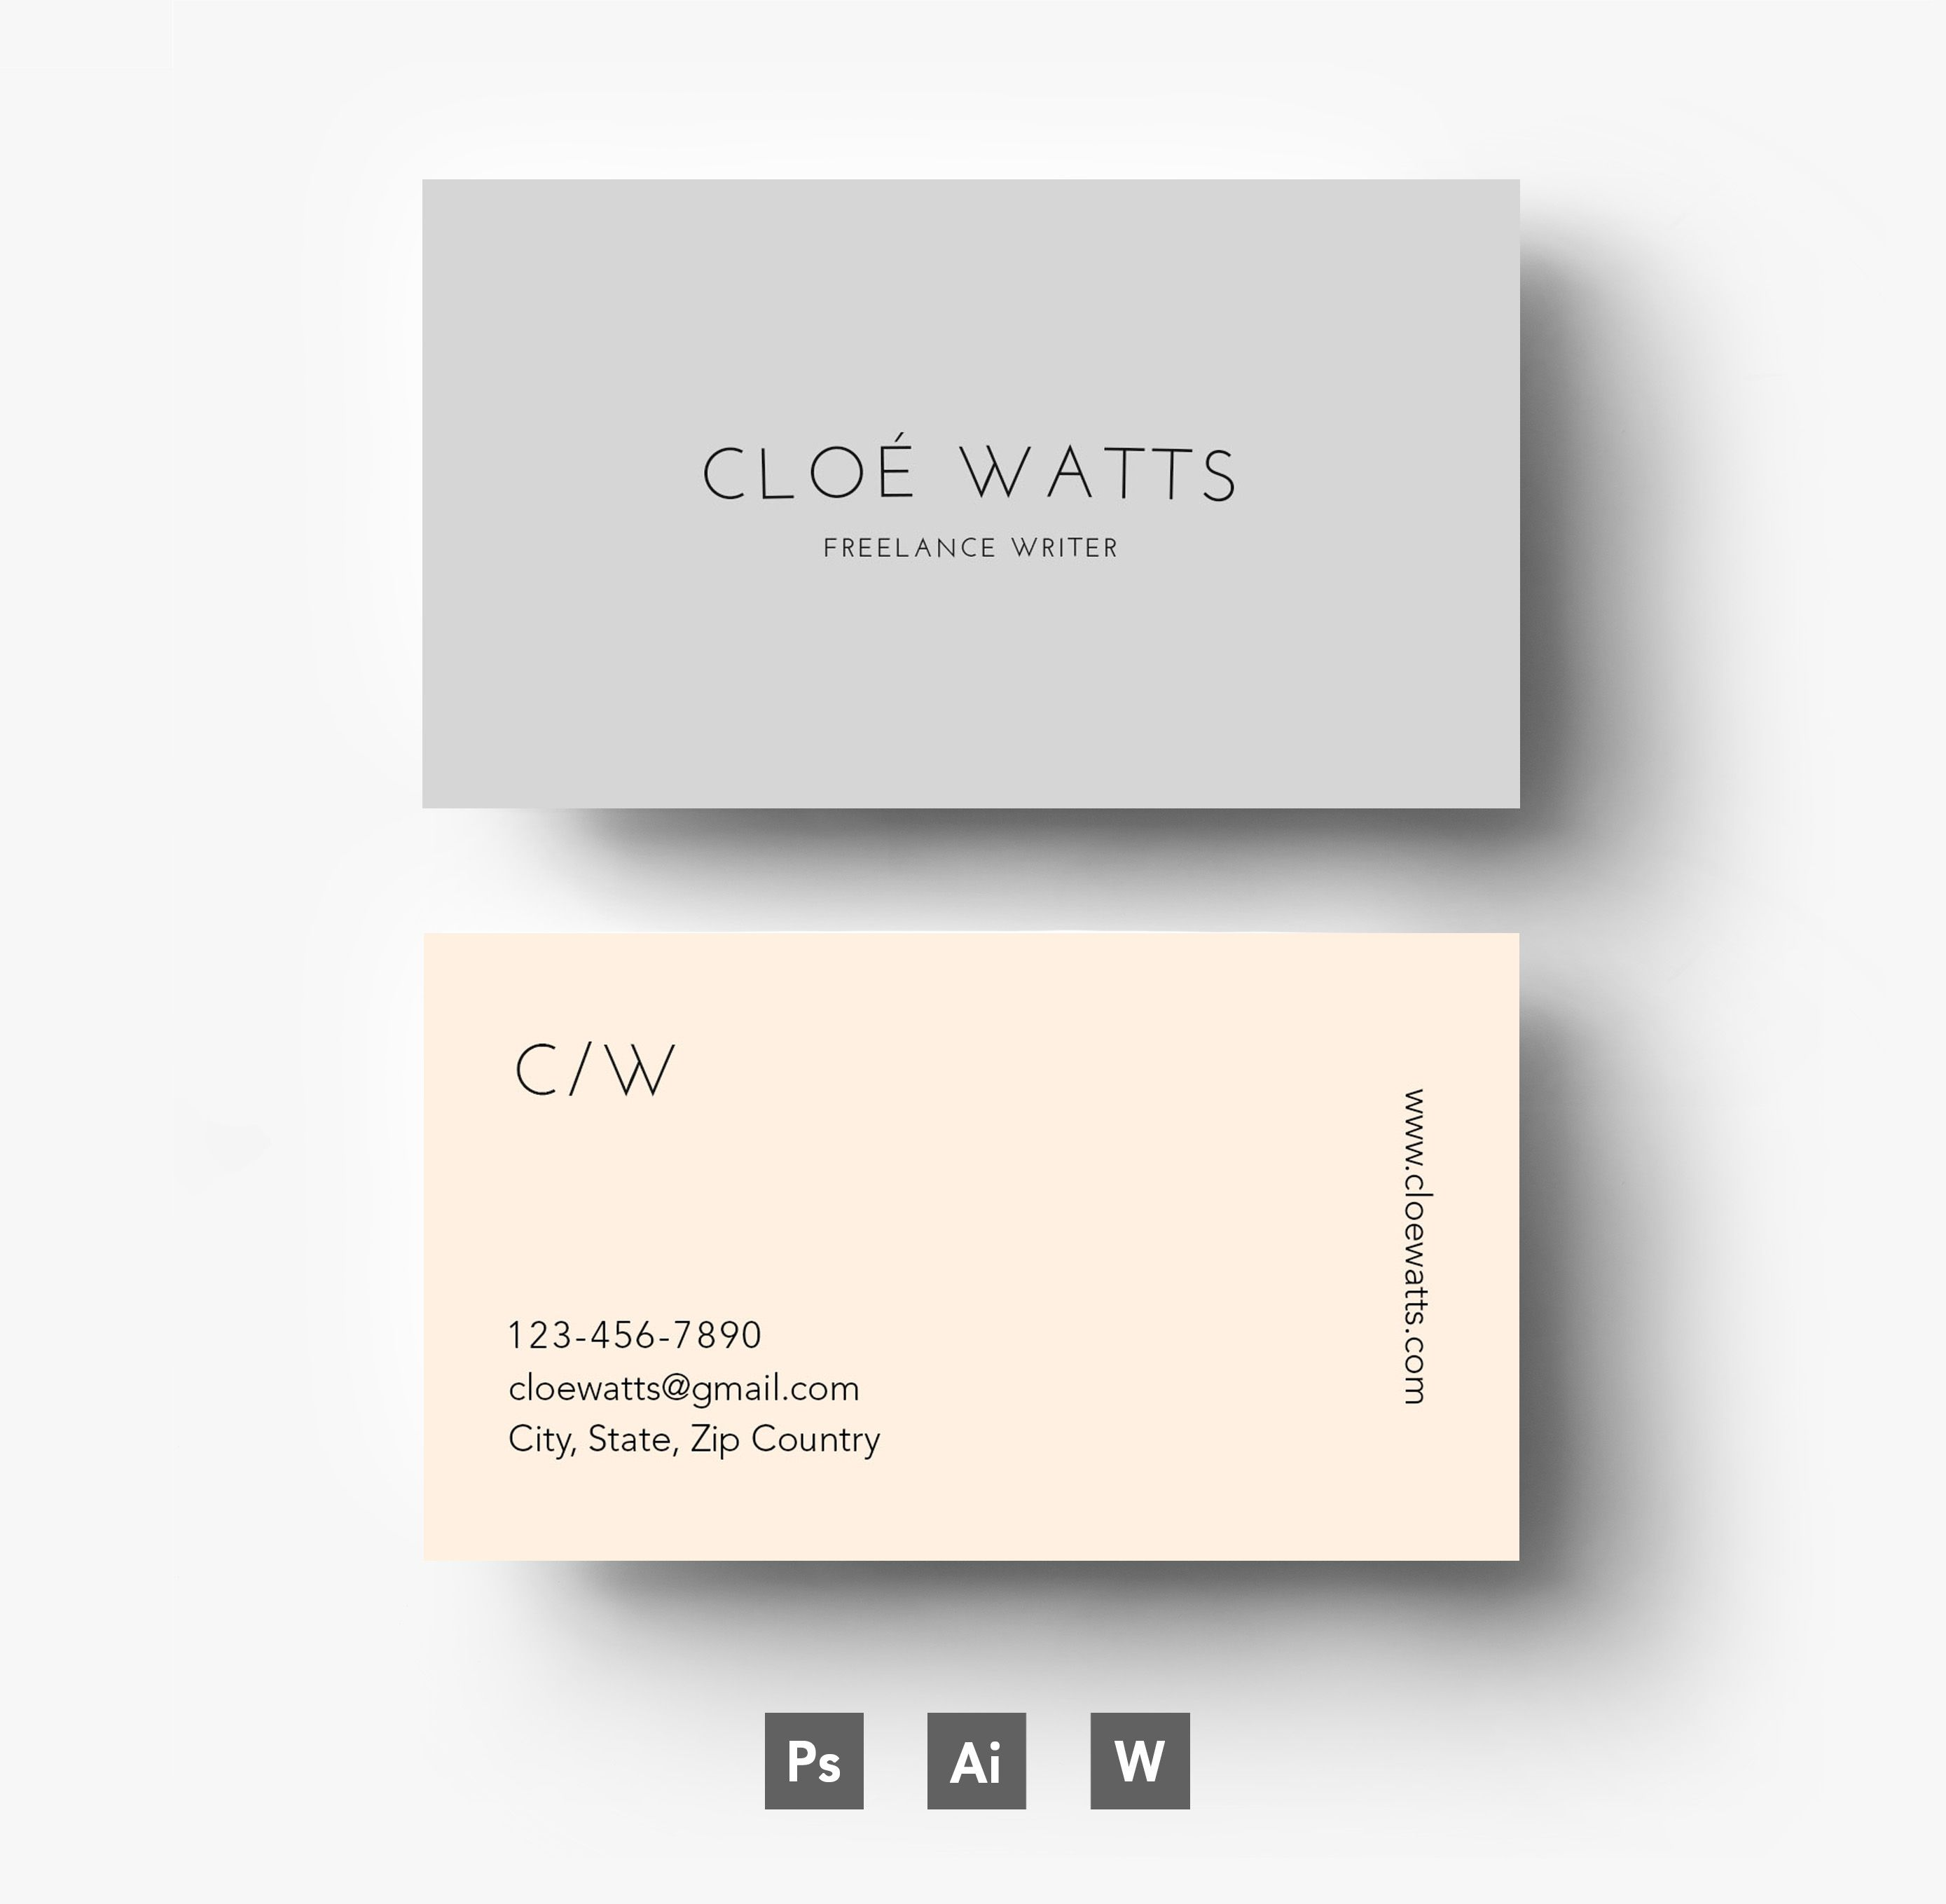 Modern business card template by emilys art boutique on creative modern business card template by emilys art boutique on creative market alramifo Image collections